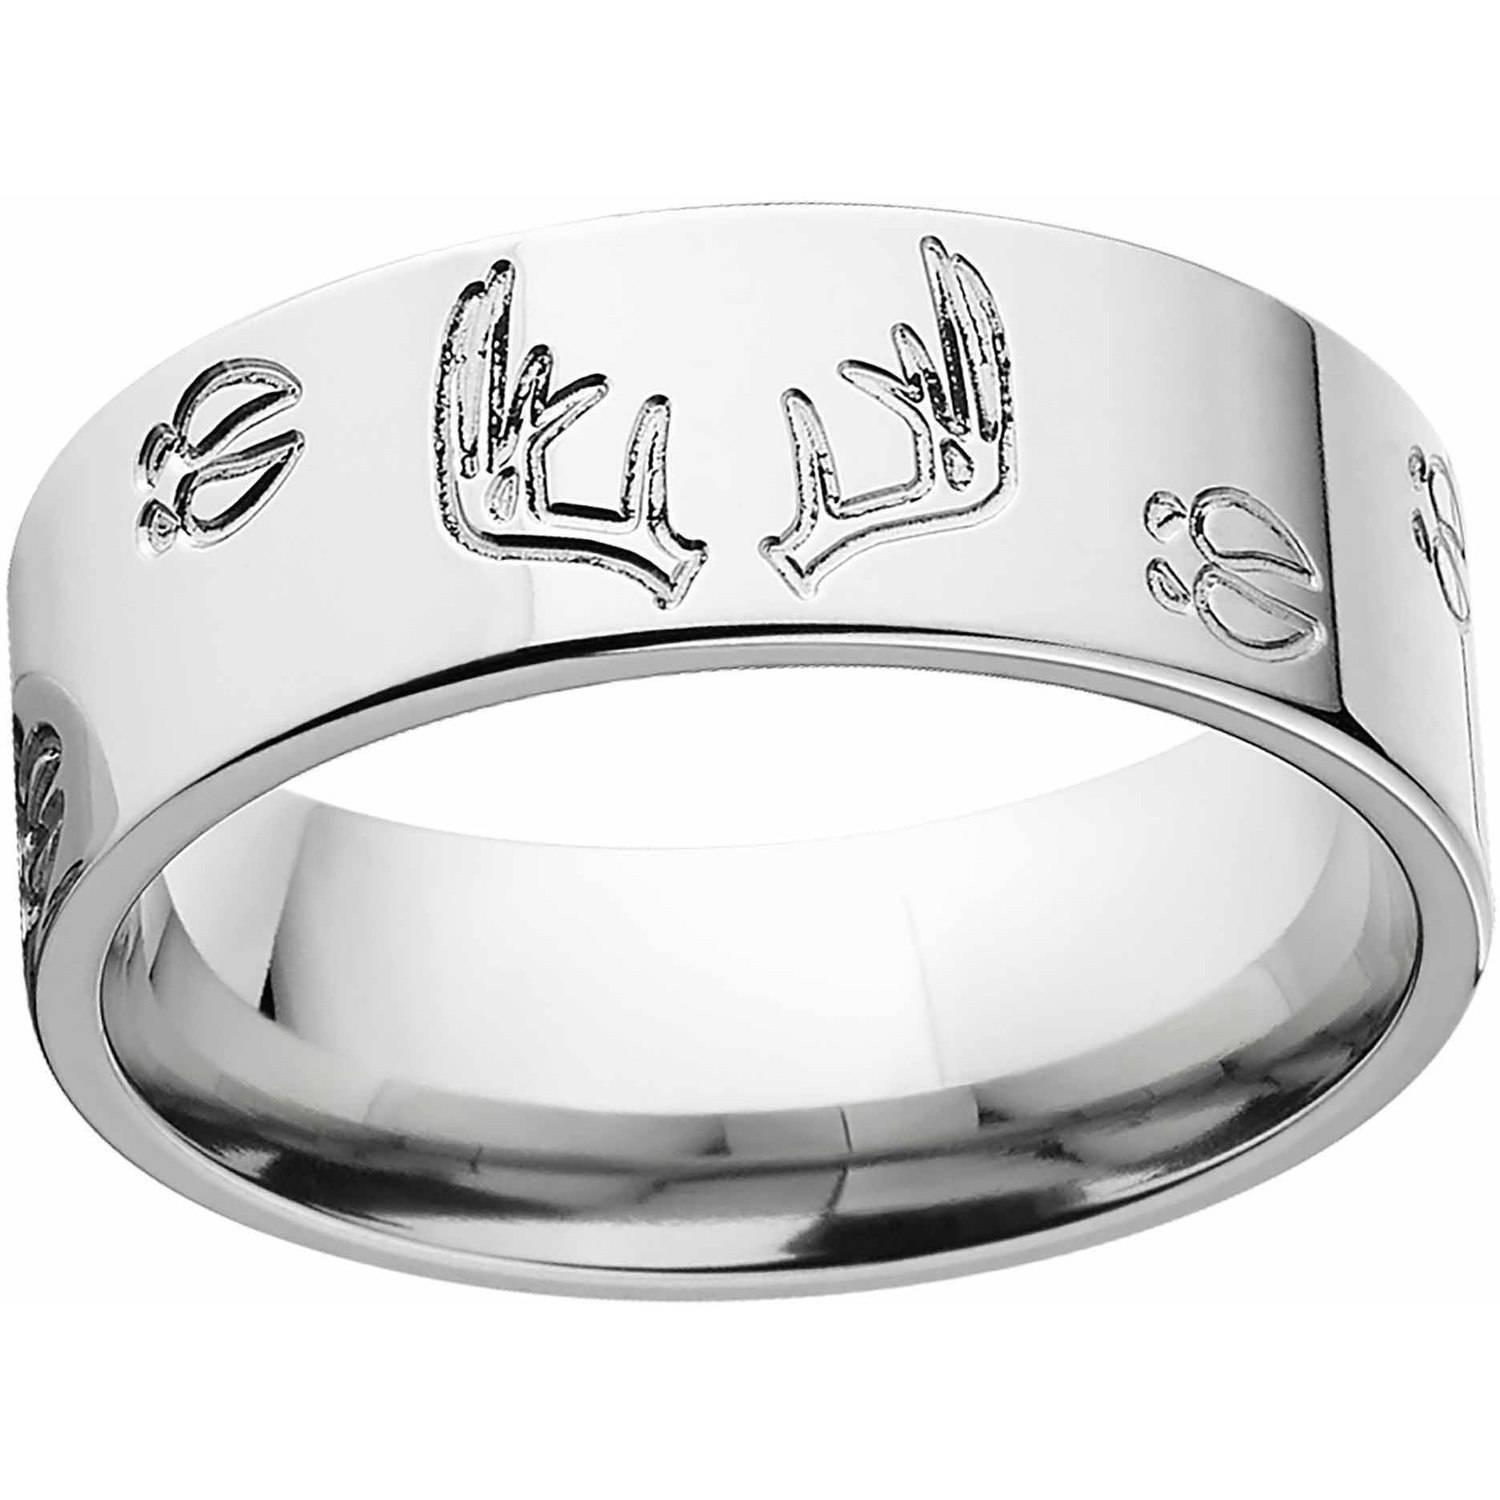 men's deer track and rack durable 8mm stainless steel wedding band